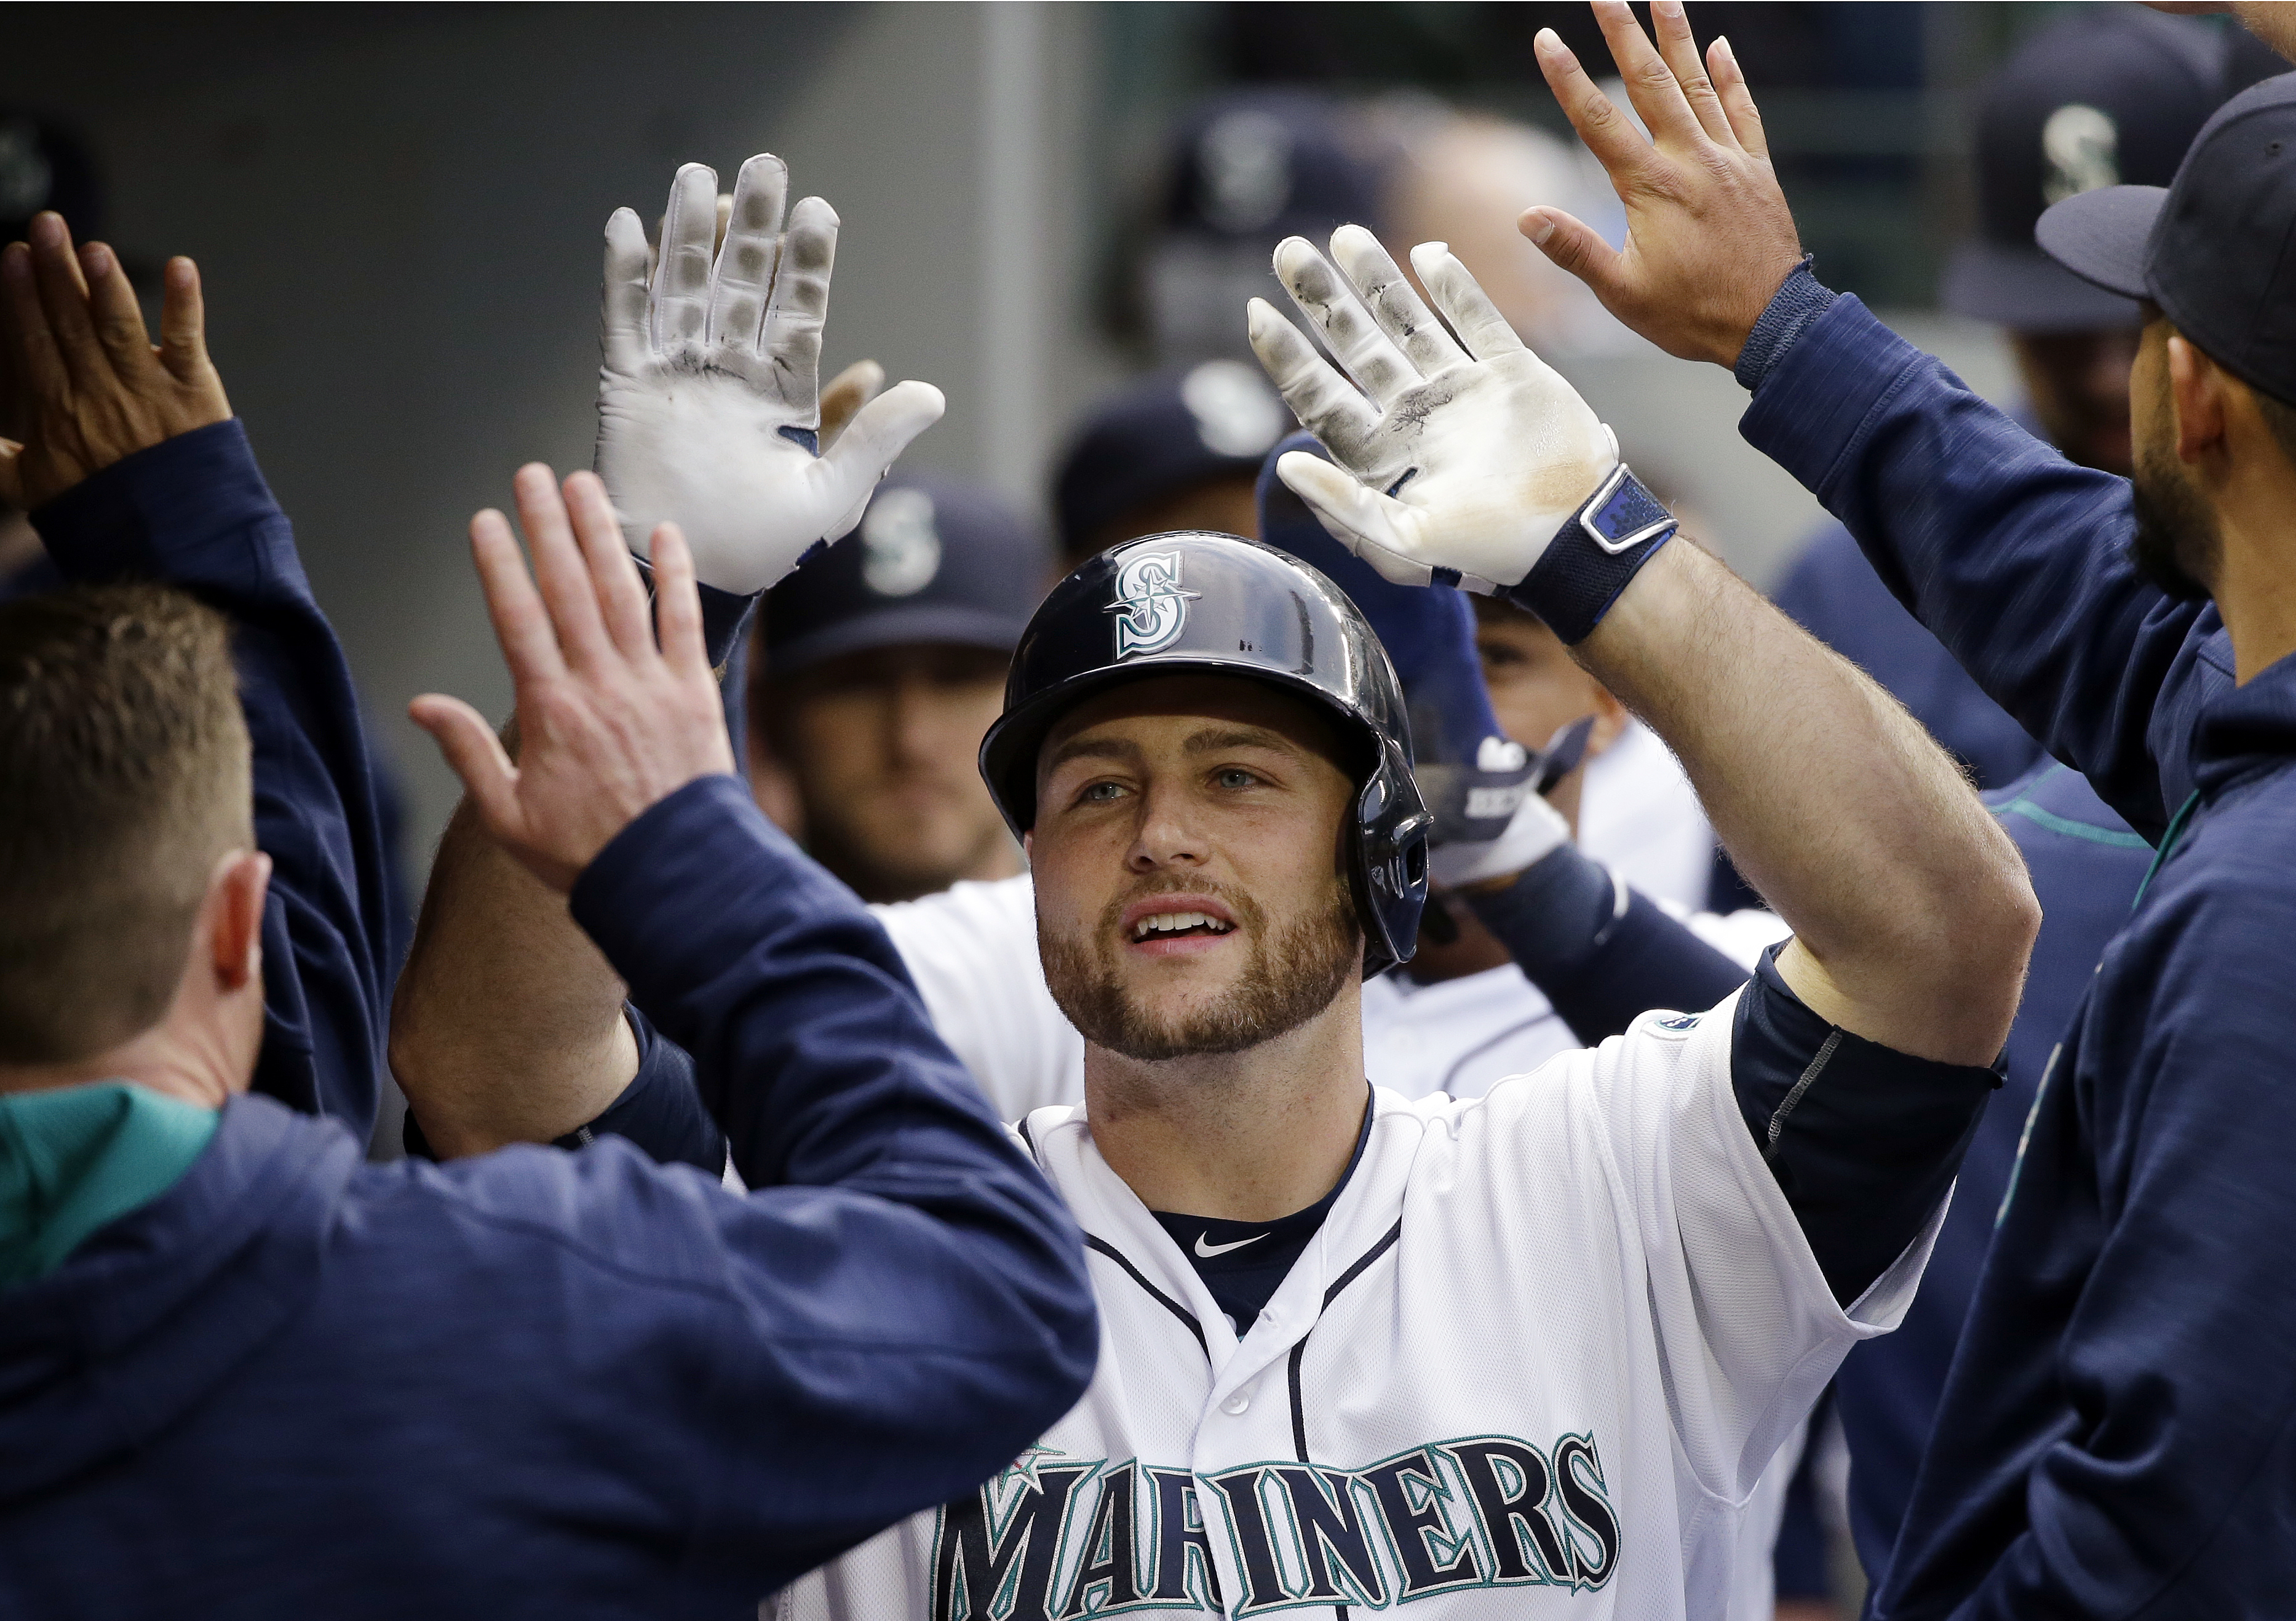 Seattle Mariners' Chris Iannetta is congratulated in the dugout after his two-run home run against the Cleveland Indians during the third inning of a baseball game Wednesday, June 8, 2016, in Seattle. (AP Photo/Elaine Thompson)